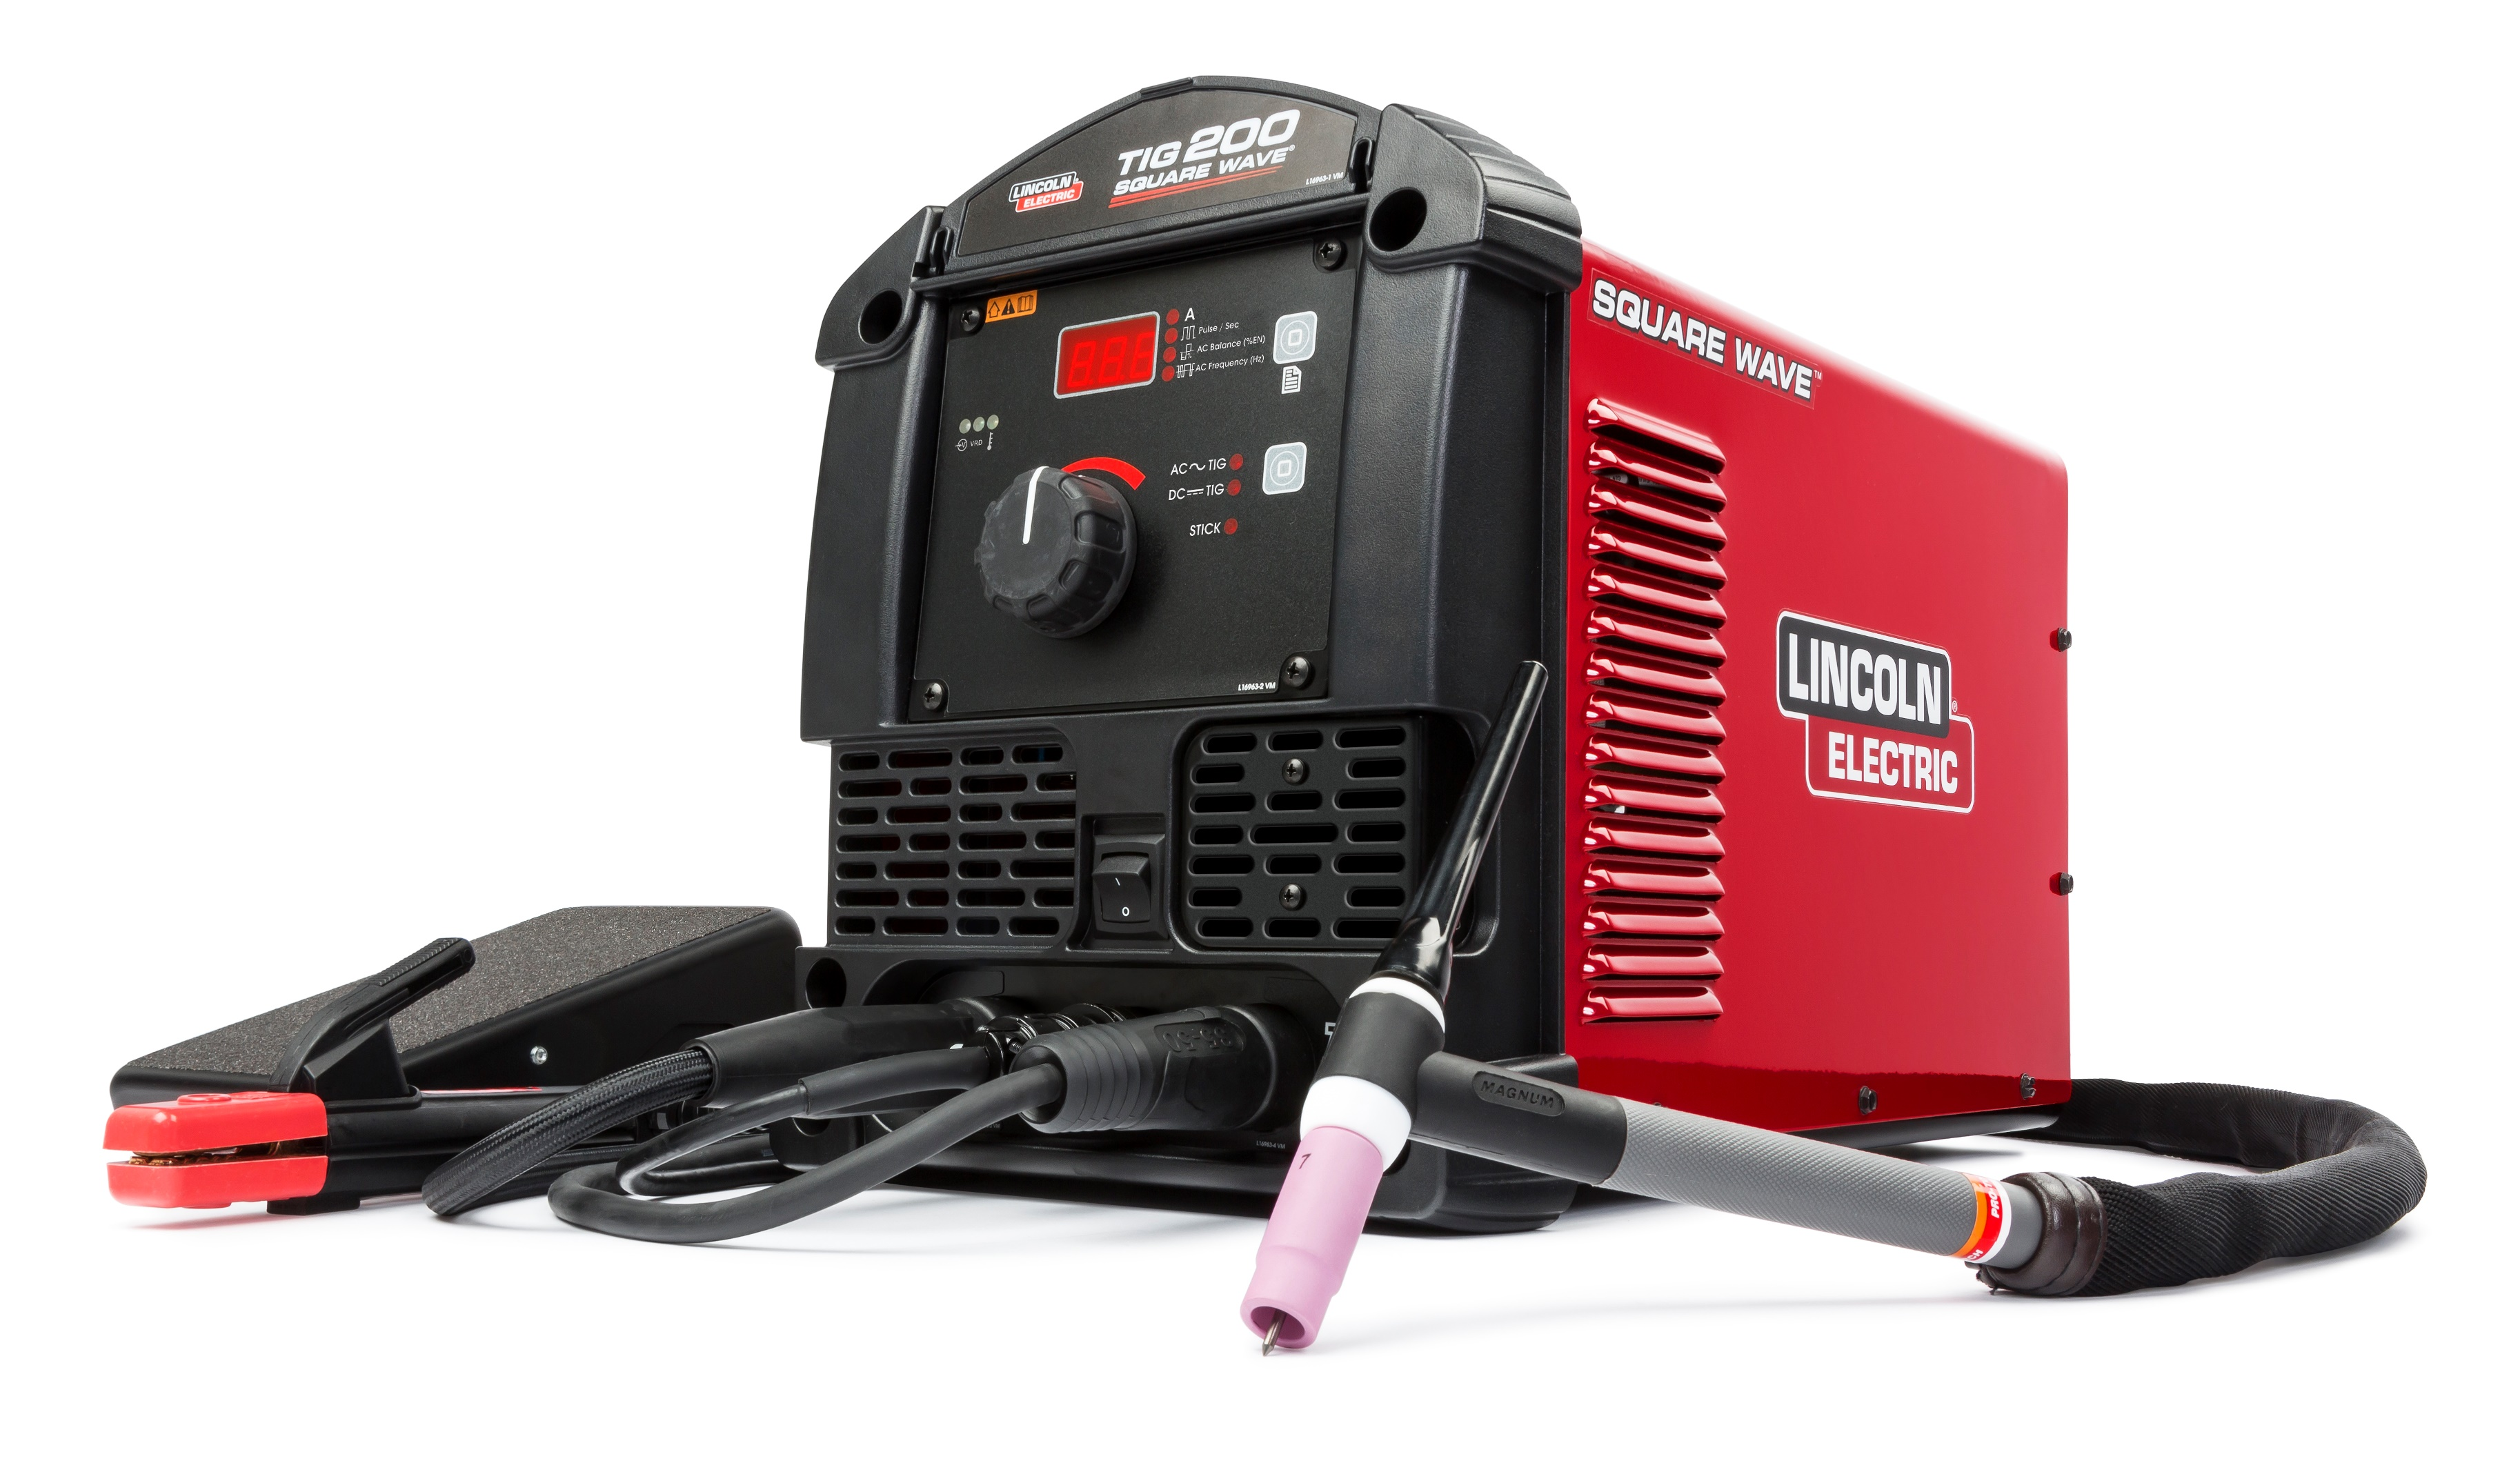 multi process welding for small shops and contractors the new square wave tig 200 welding machine from lincoln electric offers a multi process tig and stick welding experience for craftsmen